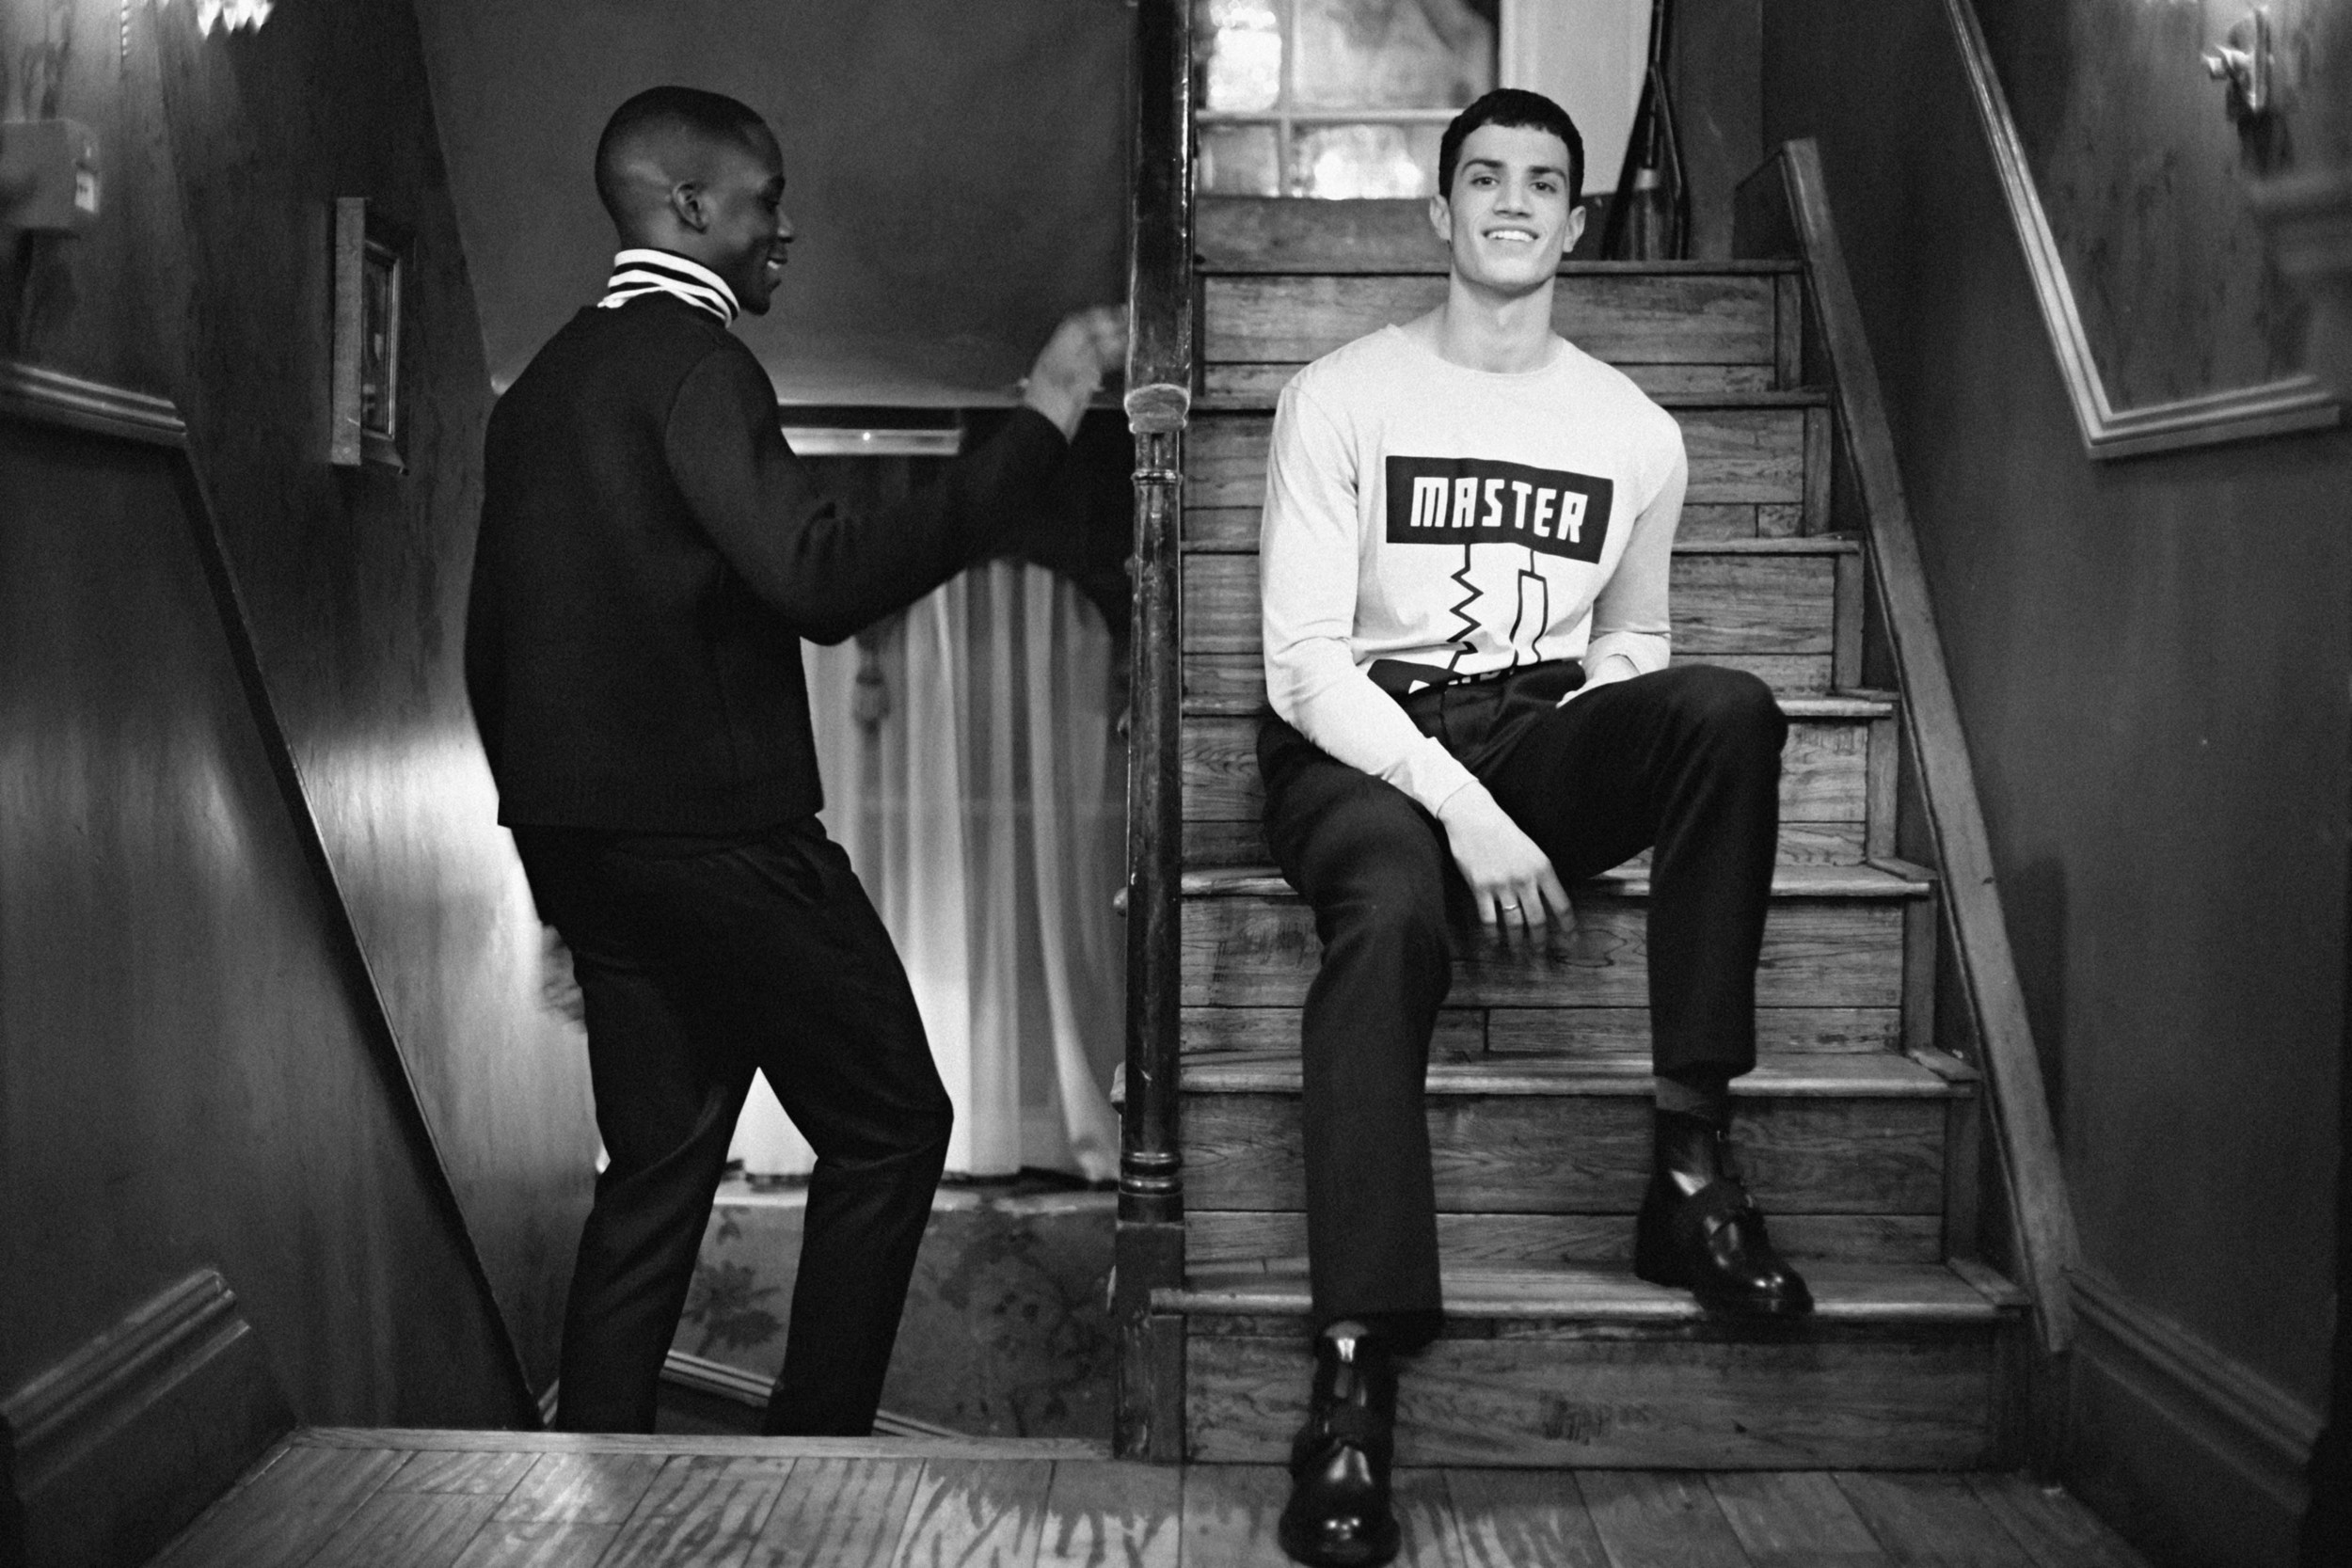 Emmanuel wears Jumper by Craig Green, Turtleneck worn underneath by Esk, Trousers by Christopher Kane and Sneakers by ISSEY MIYAKE MEN  Ashton wears Long Sleeve Top by Studio White Label, Trousers by Markus Lupfer and Boots by Christopher Kane